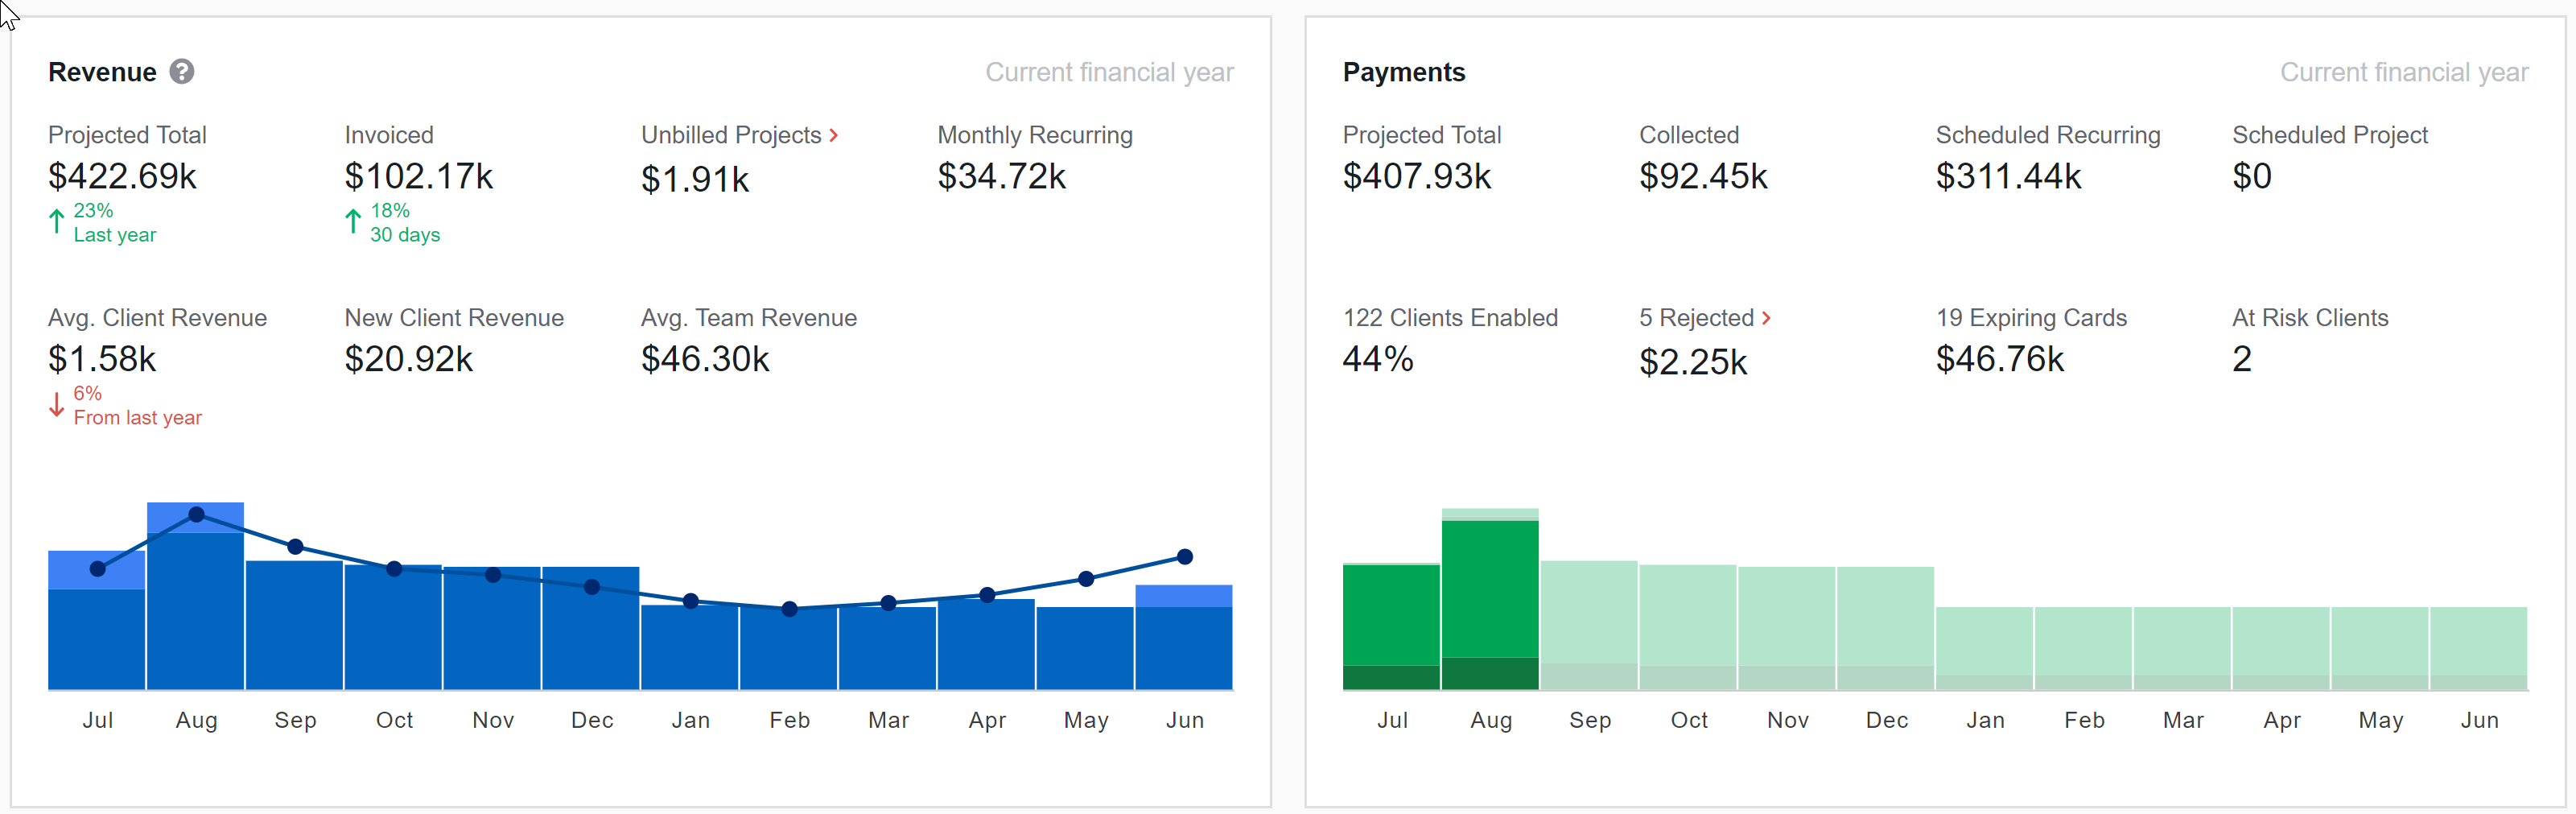 Example of embedded dashboards - revenue